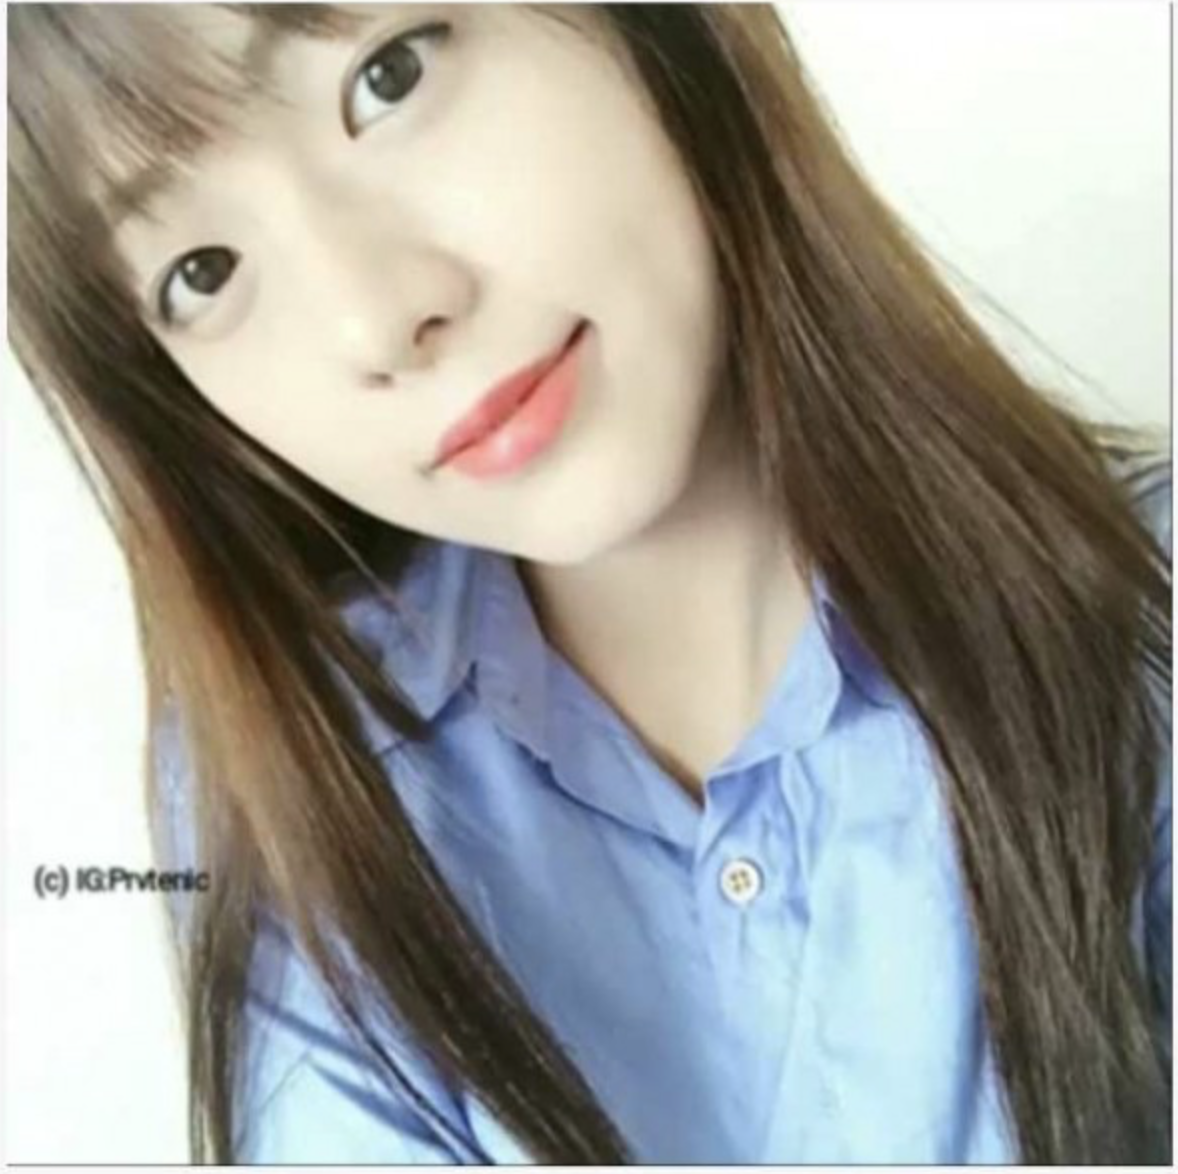 Blackpink Jisoo's sister and brother - K-POP, K-FANS